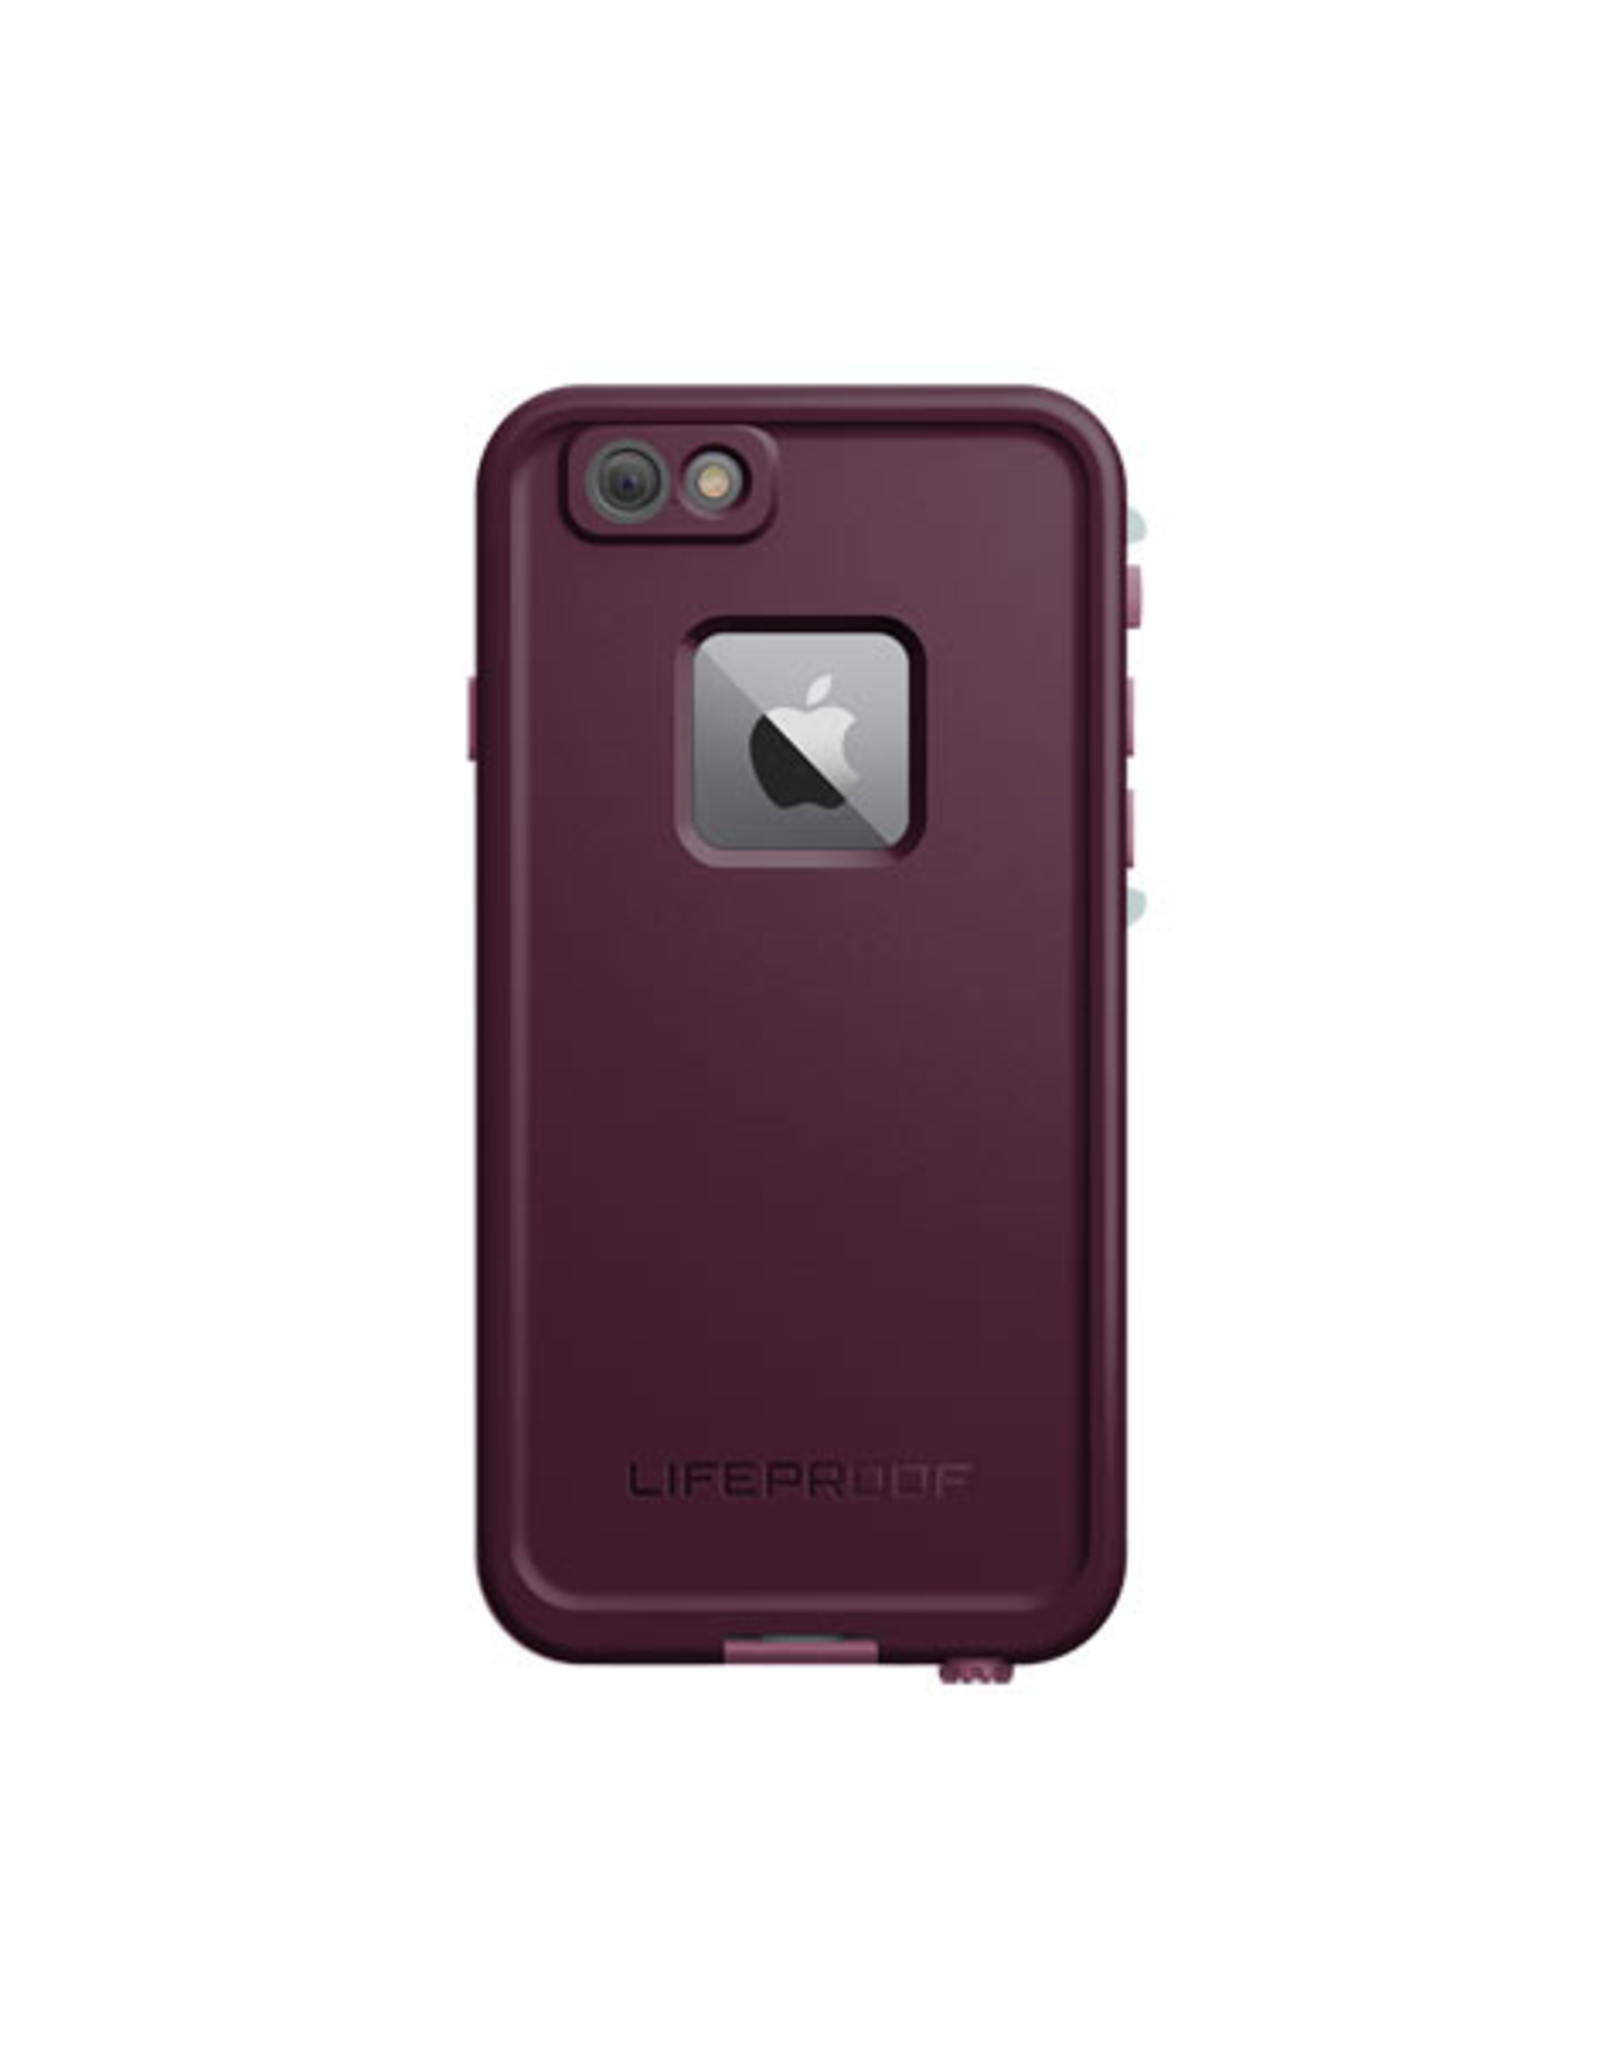 Lifeproof LifeProof Fre Case suits iPhone 6/6s - Crushed Purple